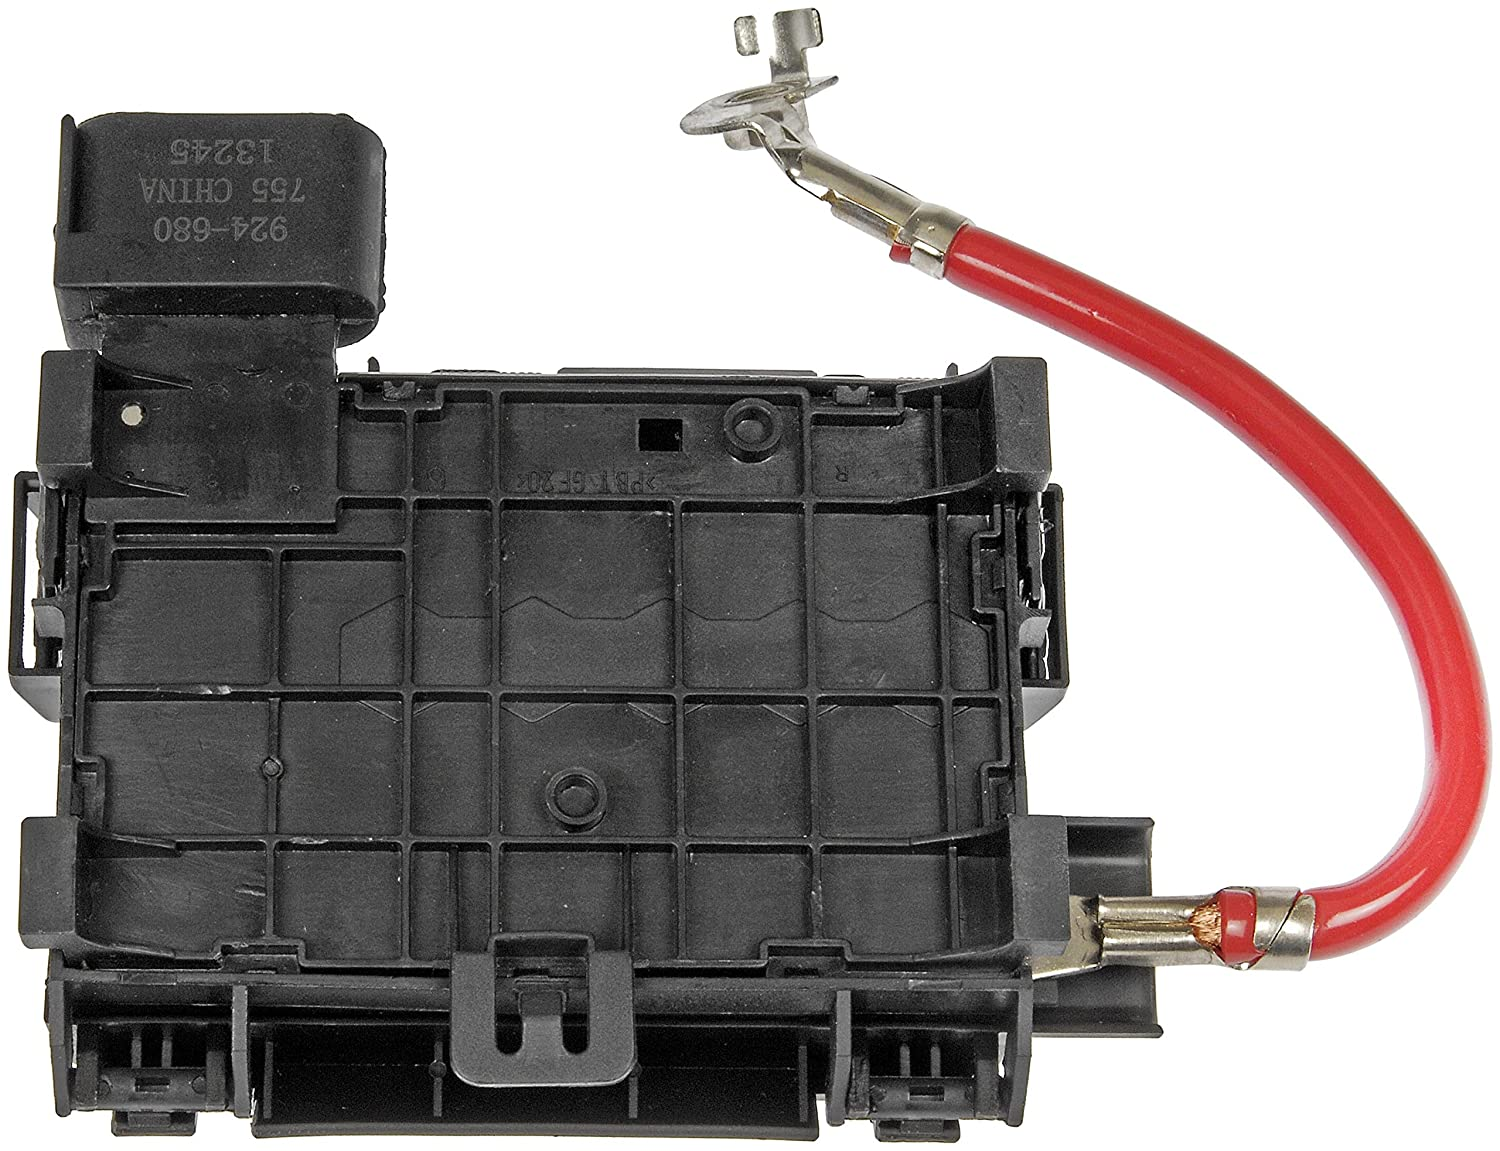 Dorman 924 680 High Voltage Fuse Box Automotive 2003 Vw Beetle Block Wiring Harness